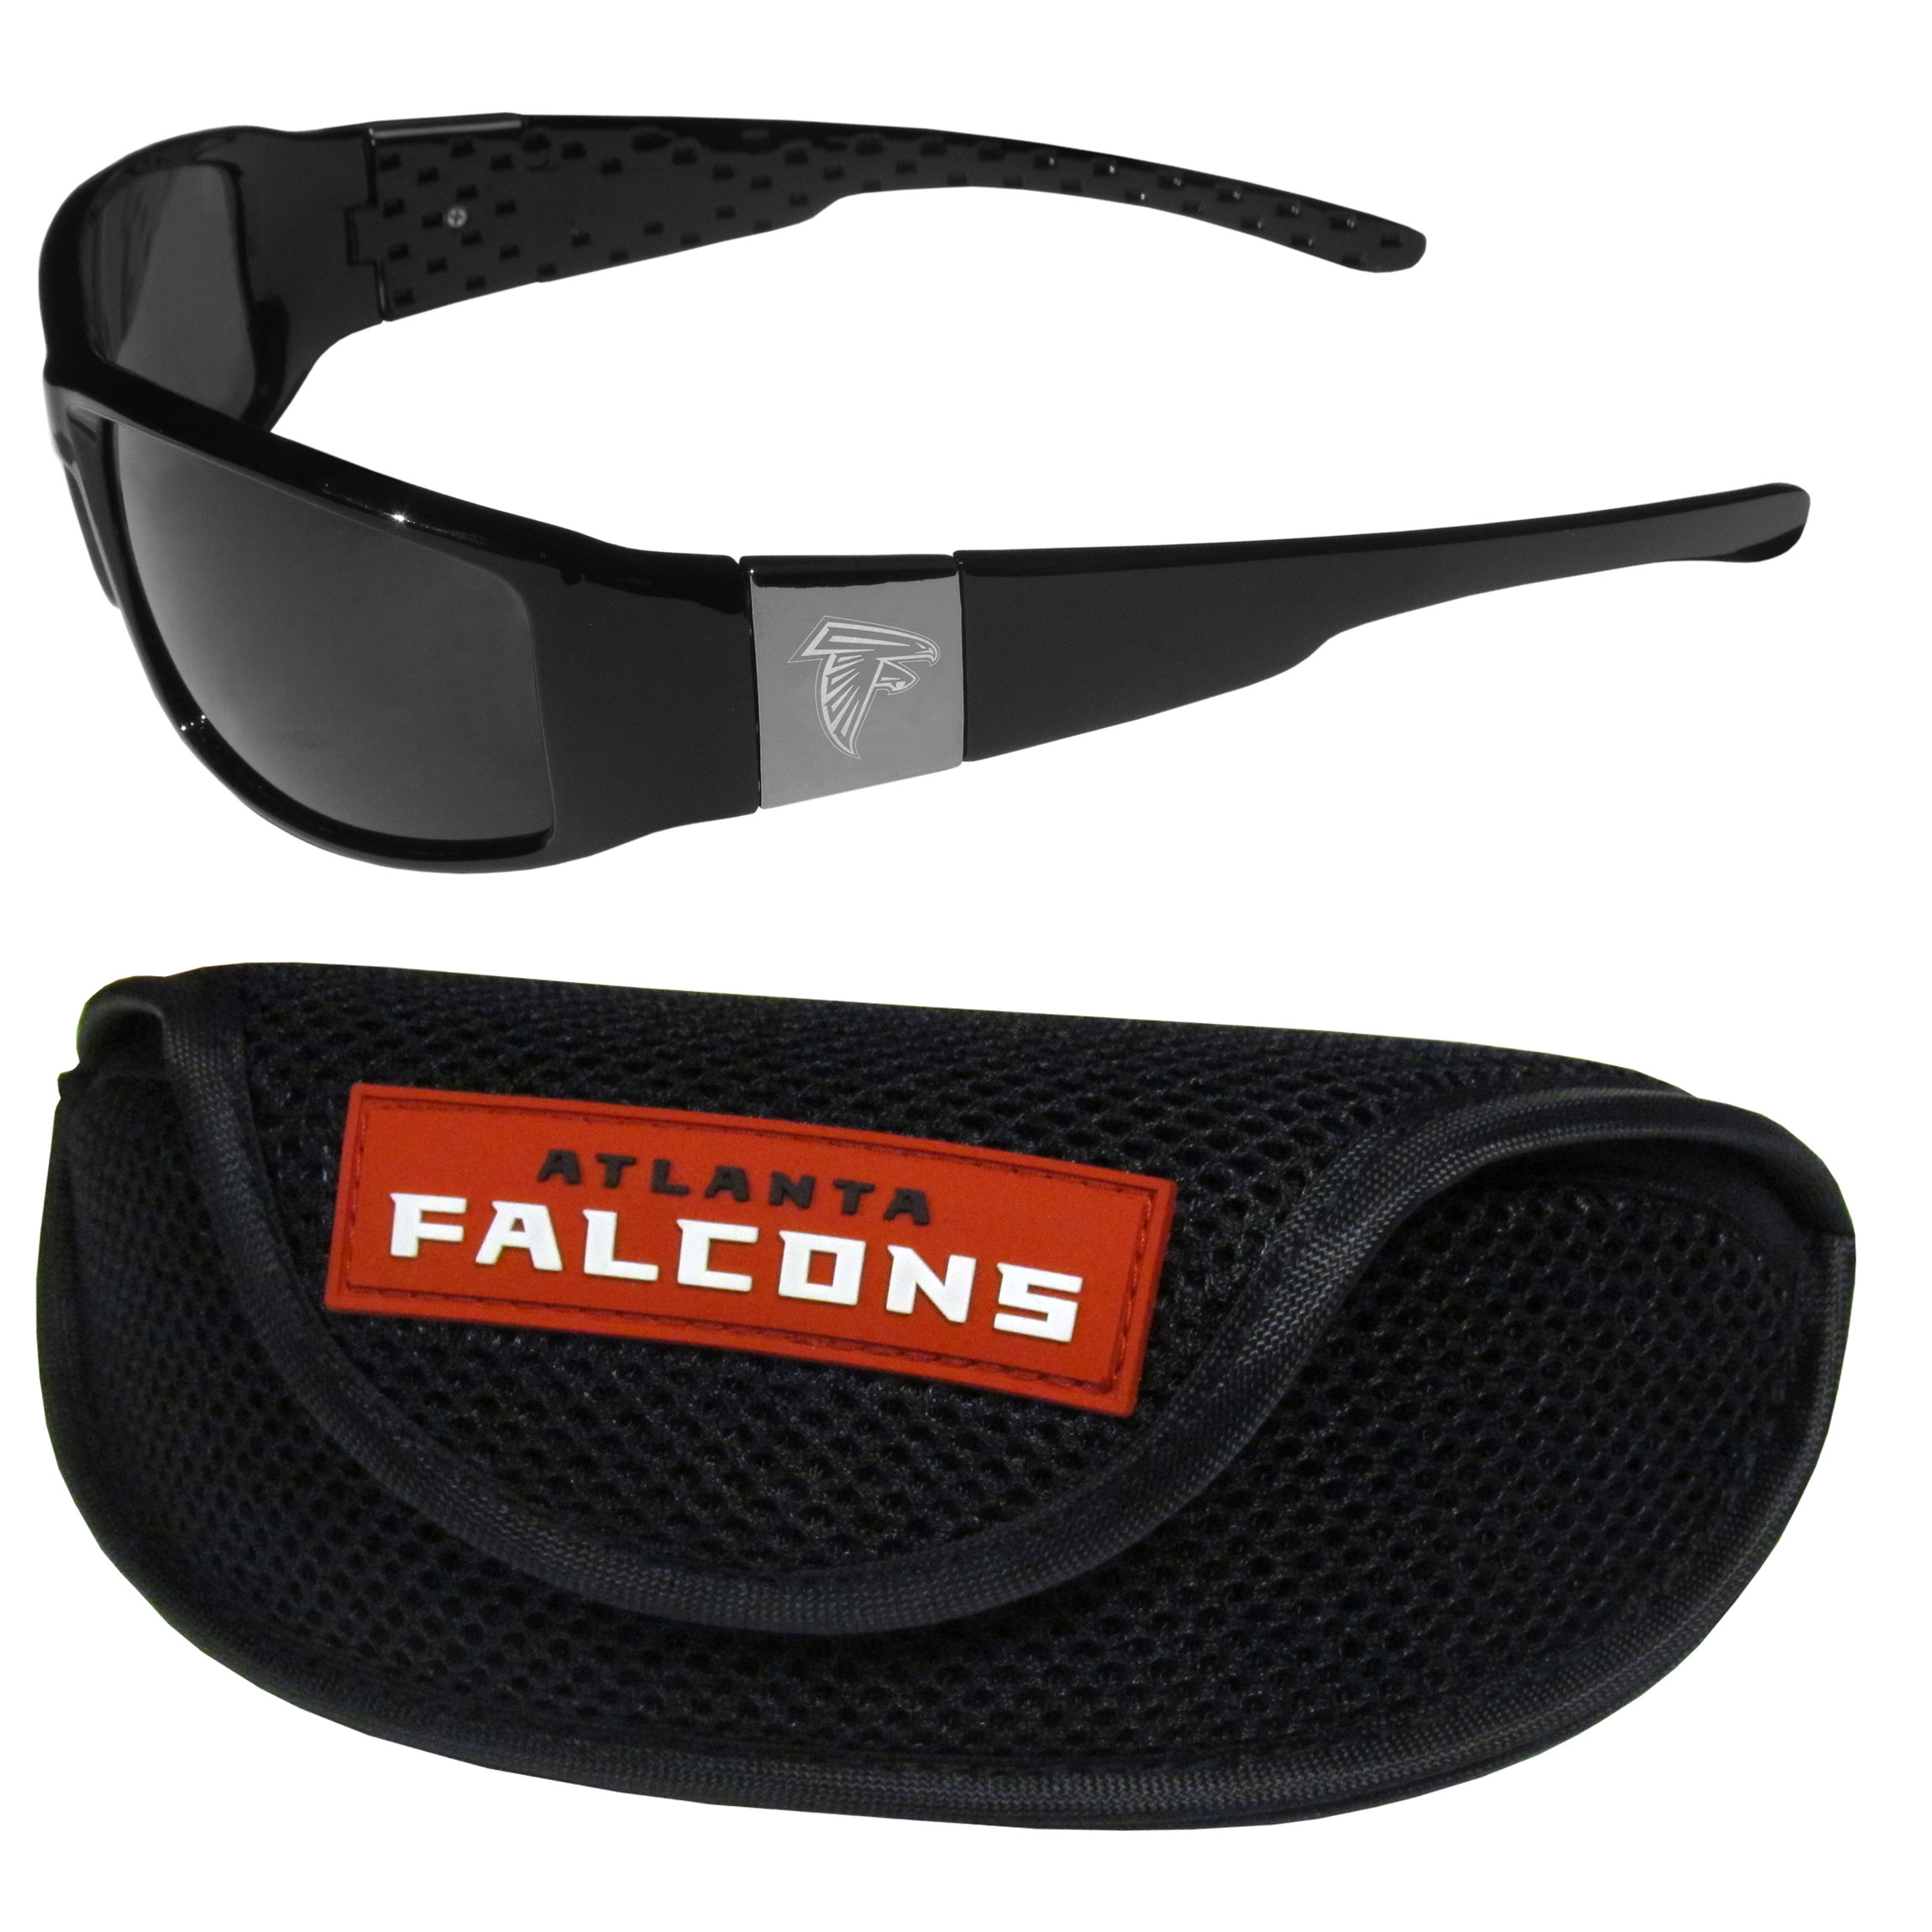 Atlanta Falcons Chrome Wrap Sunglasses and Sports Case - Our sleek and stylish Atlanta Falcons chrome wrap sunglasses and our sporty mesh case. The sunglasses feature etched team logos on each arm and 100% UVA/UVB protection. The case features a large and colorful team emblem.